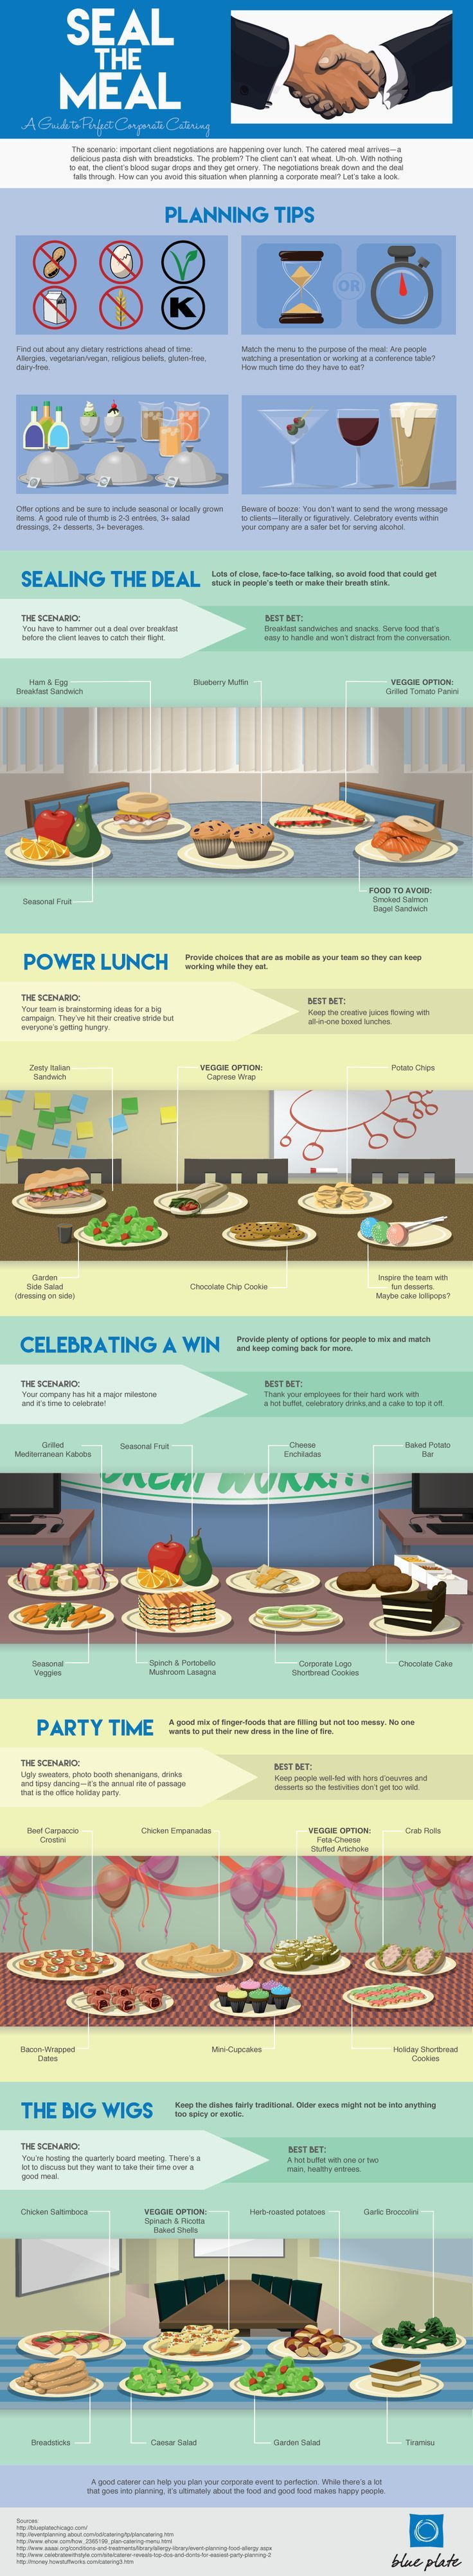 Catering the Perfect Corporate Meal #infographic #Food